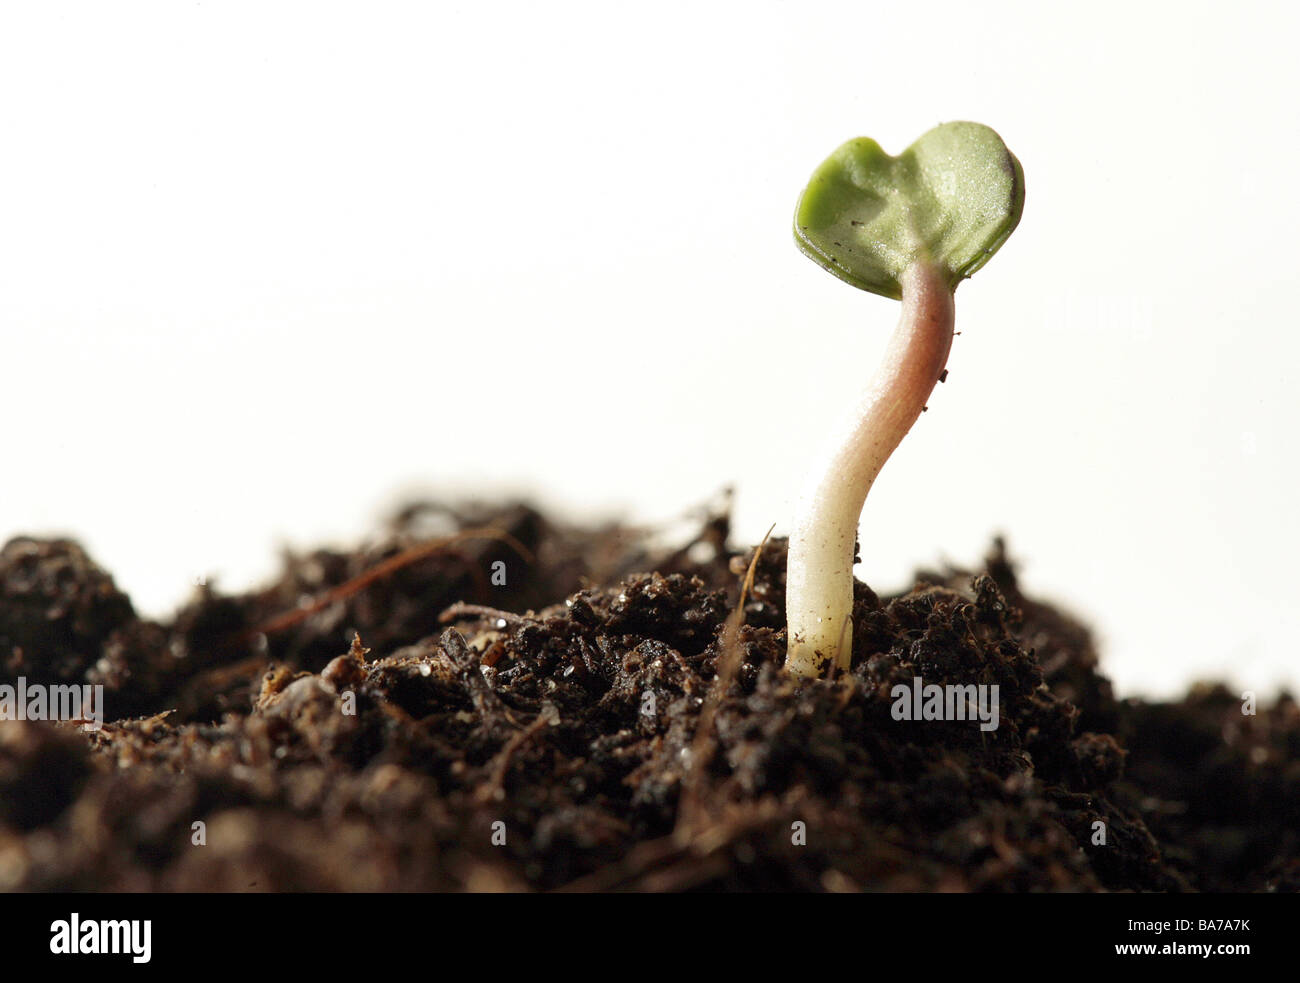 Earth plant seedling series Setzling instinct shoot seedling germ sprouts grows plants plants starts growth symbol - Stock Image